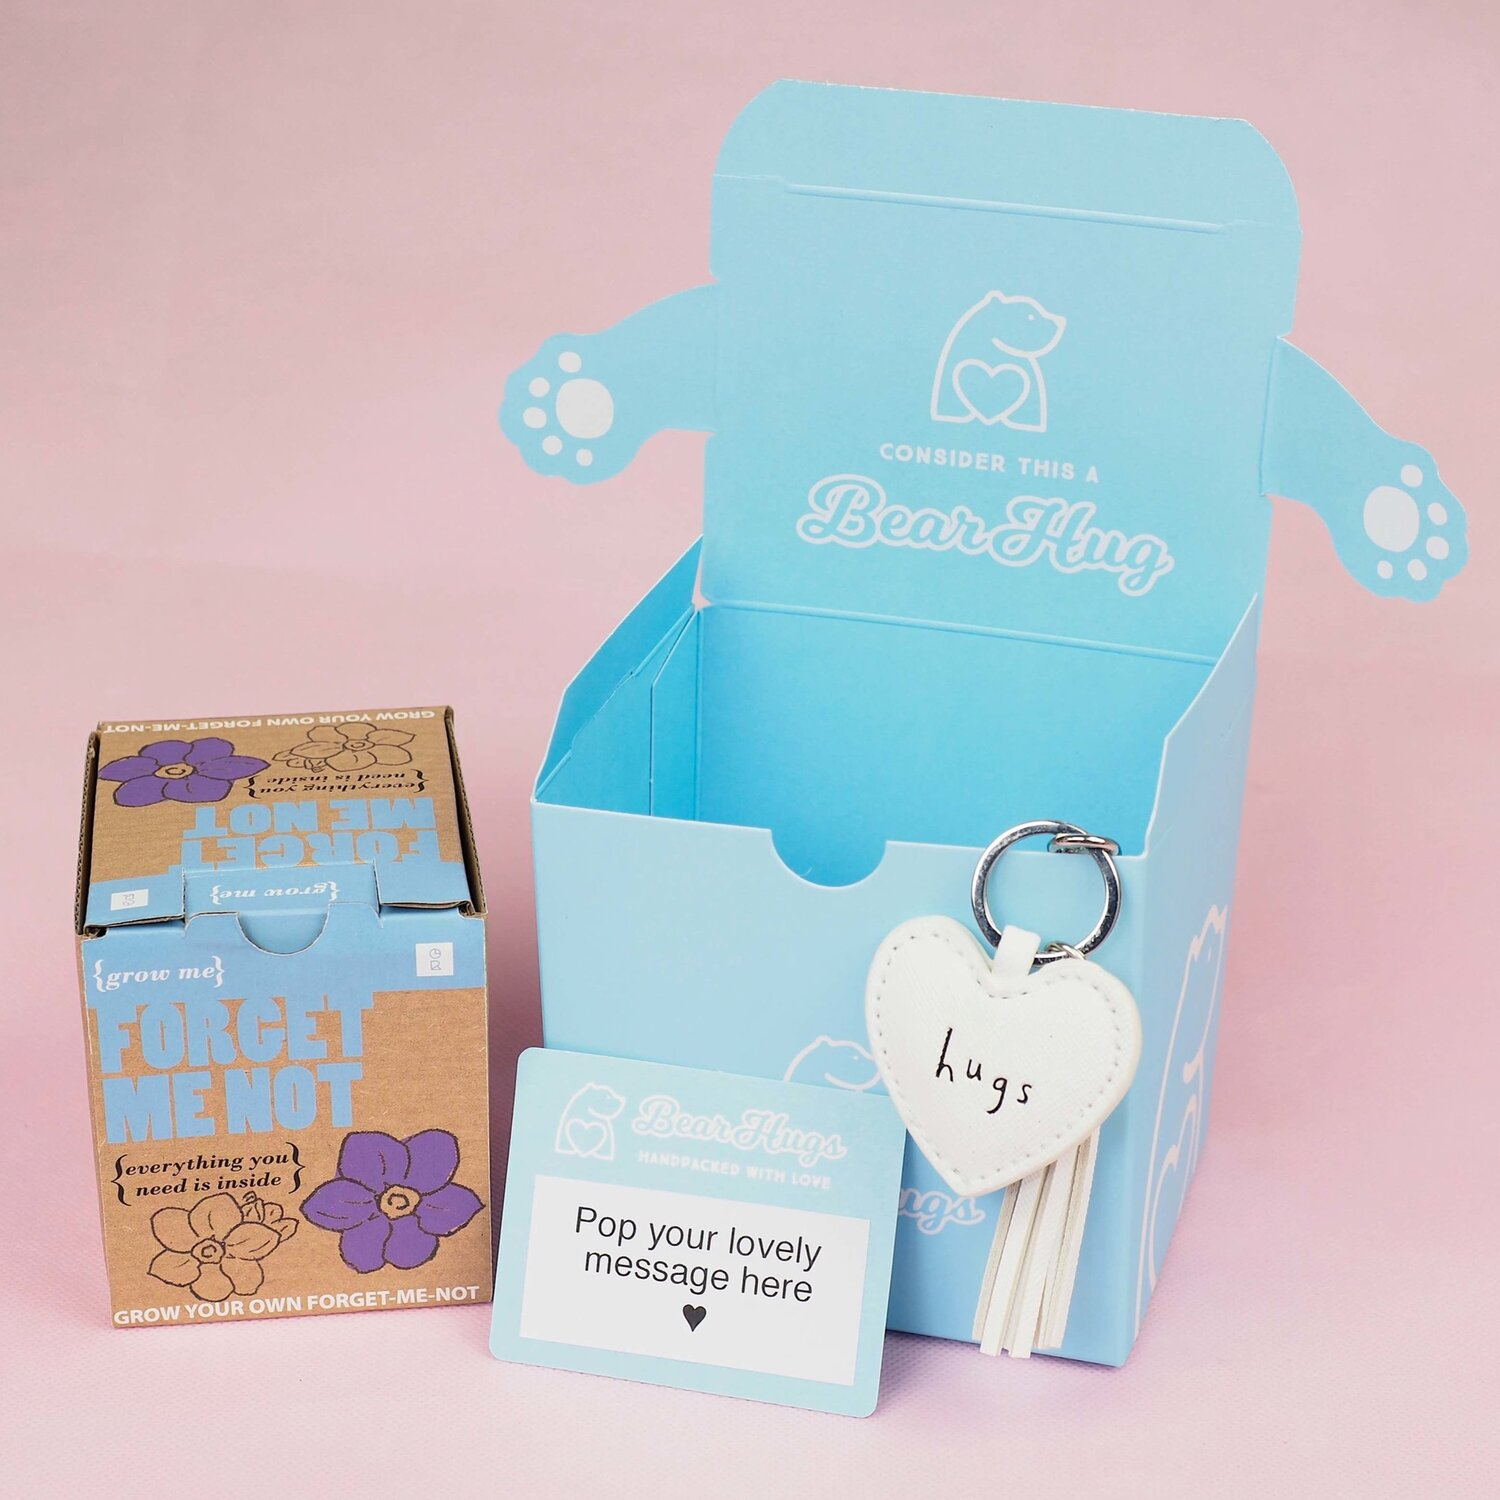 Forget-Me-Not Hug in a Box — BearHugs | Send a 'Hug in a Box' Thinking of  You Gift by Post